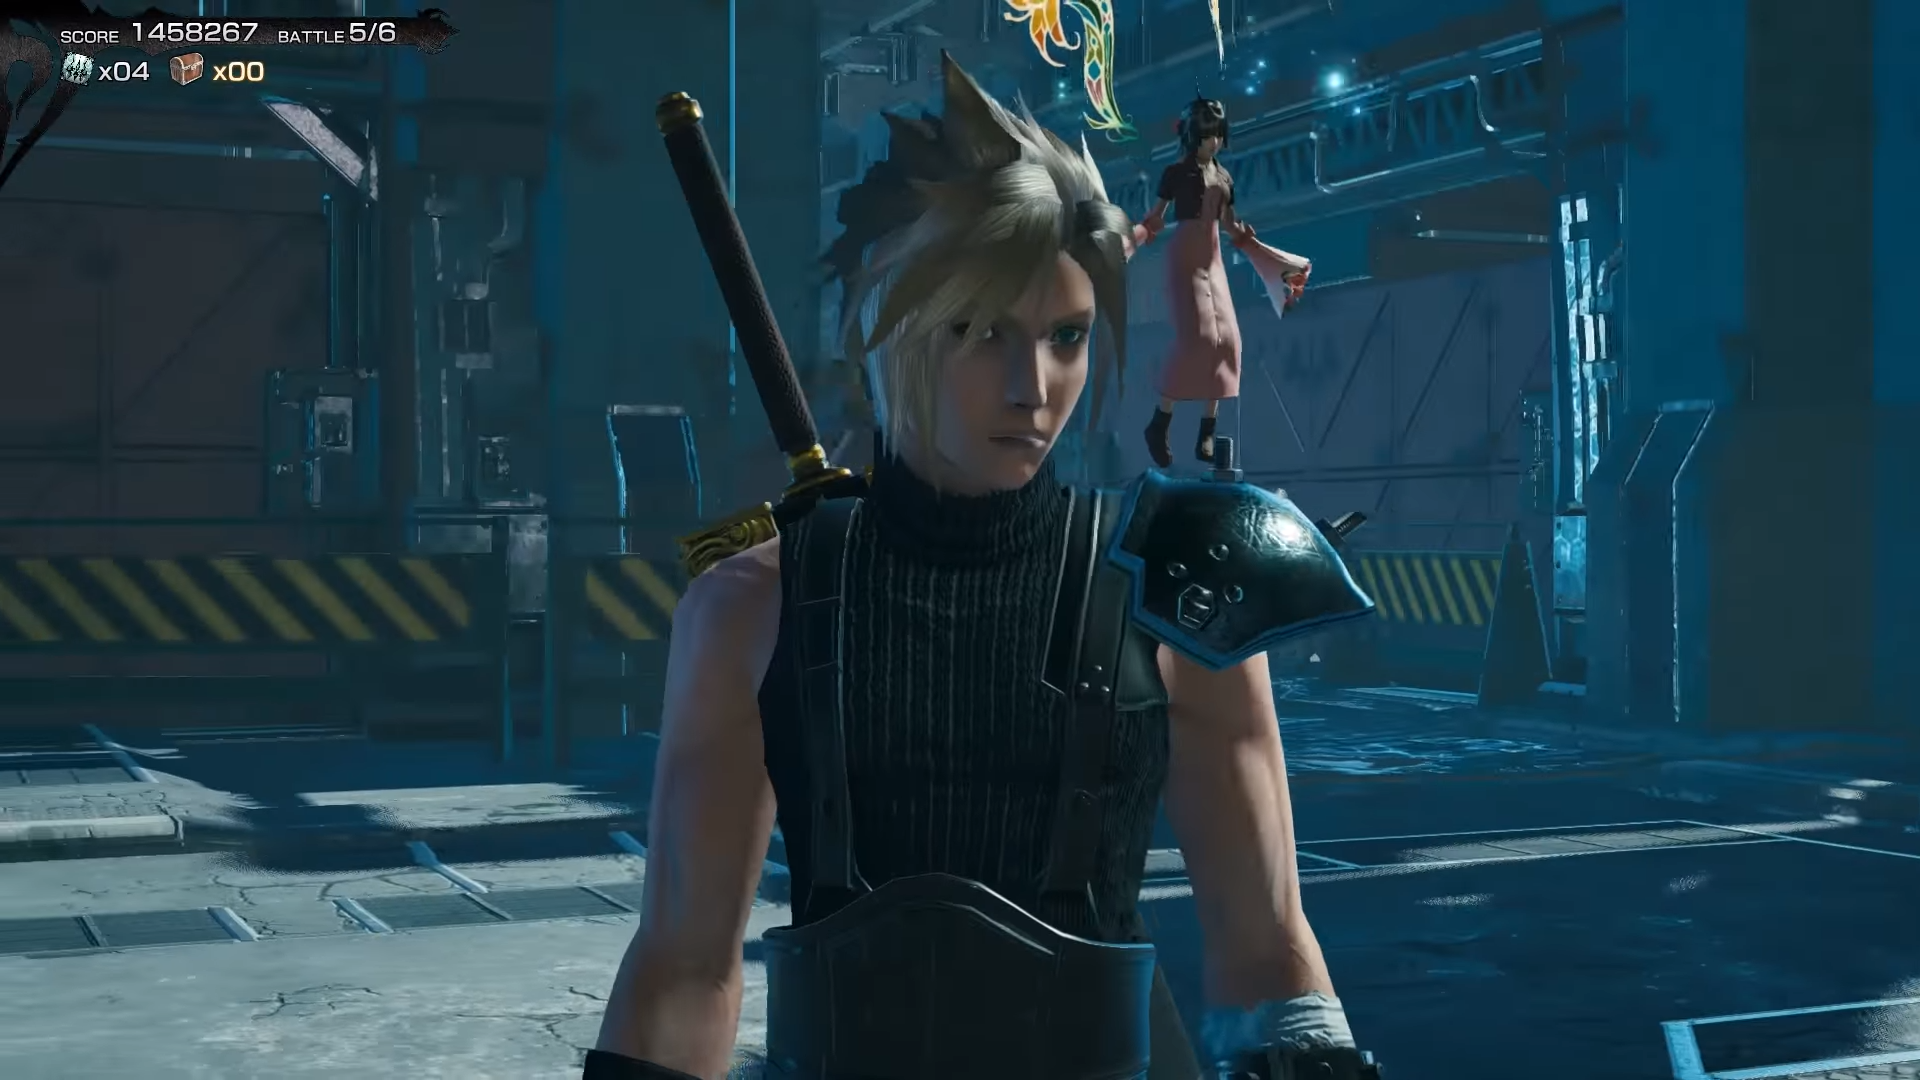 Fight As The Brooding Swordsman, Cloud Strife in Mobius Final Fantasy!